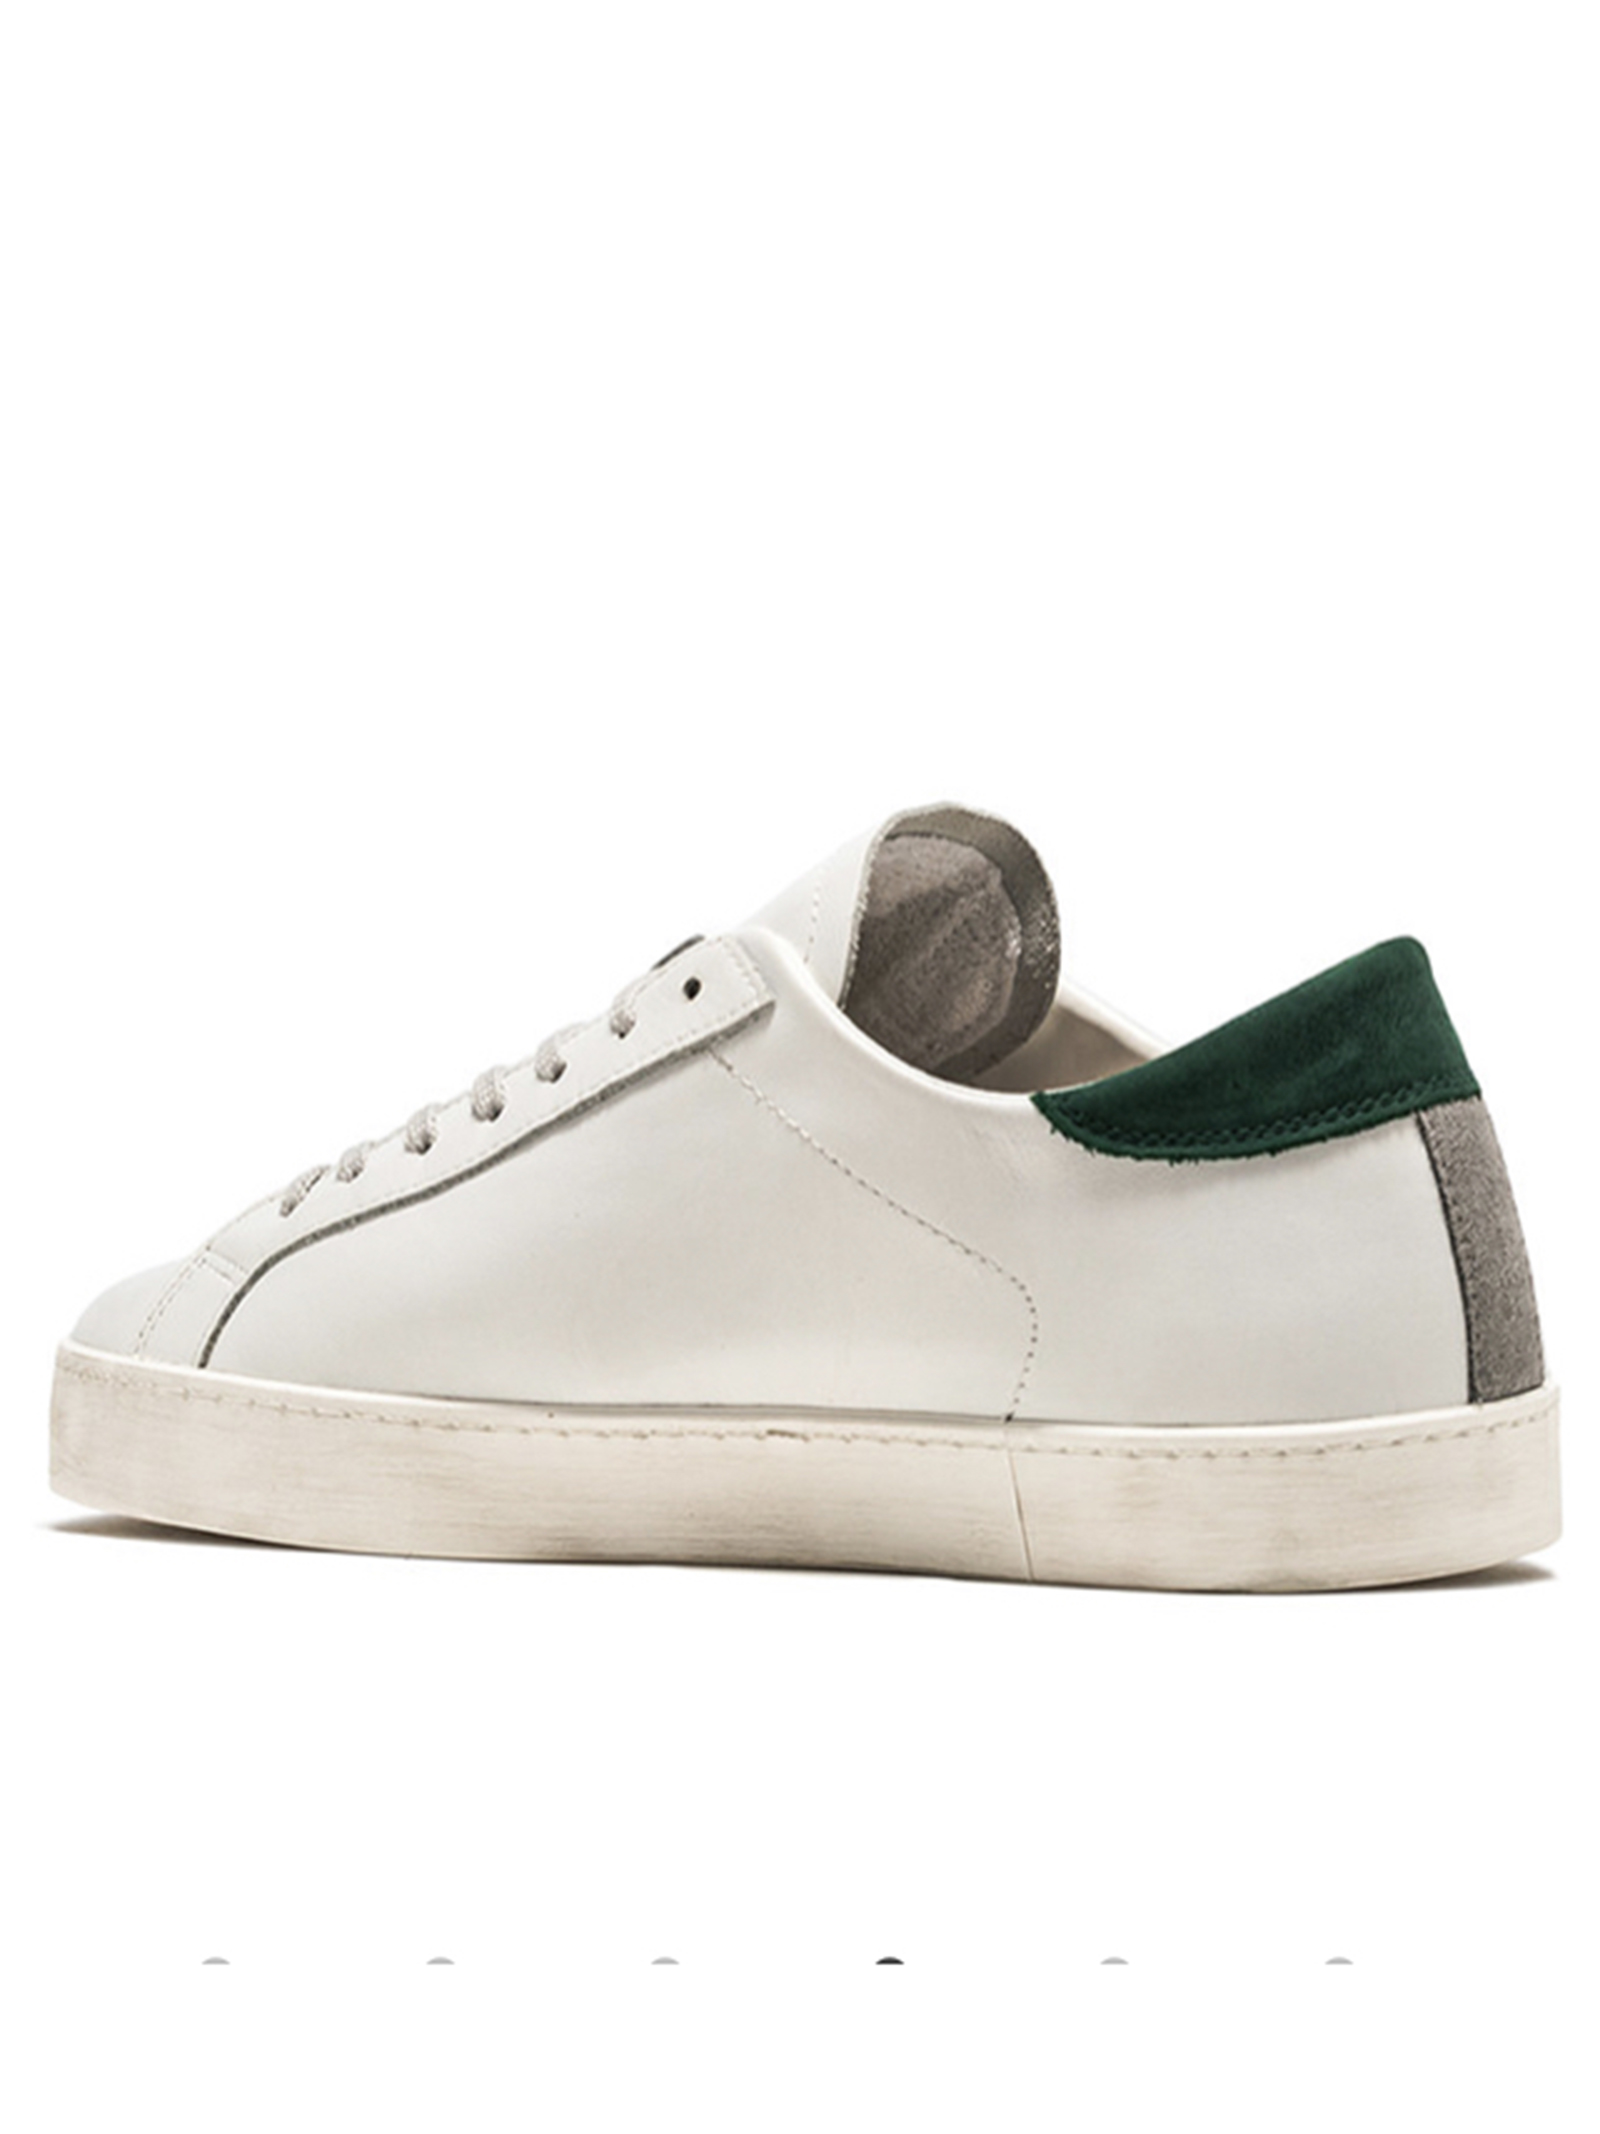 D.A.T.E. |  | HILL LOW CALFWHITE GREEN